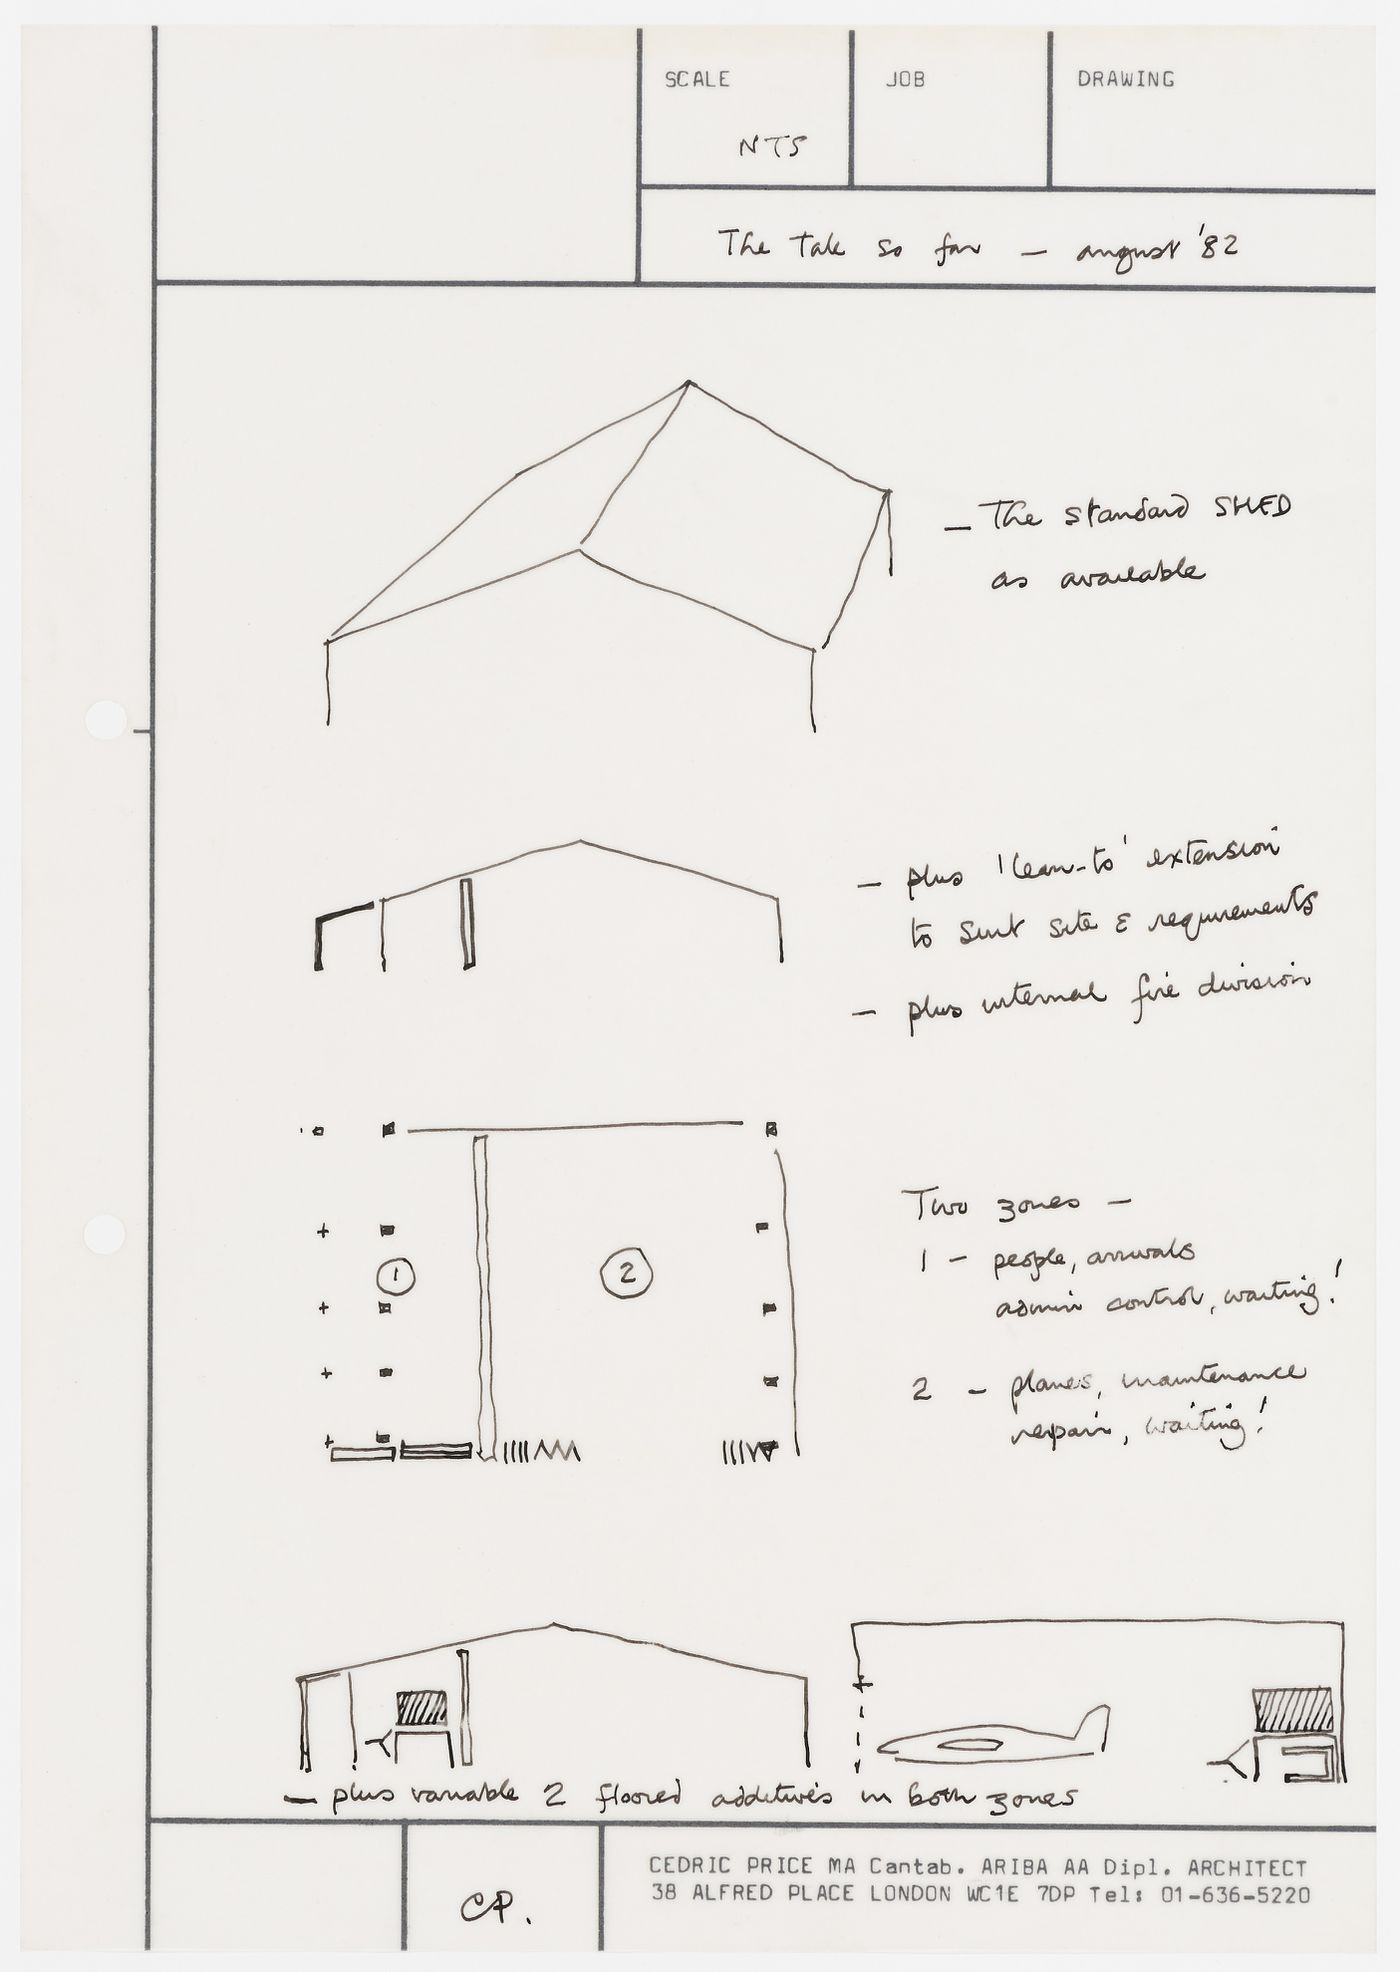 B-Air: conceptual sketches and notes